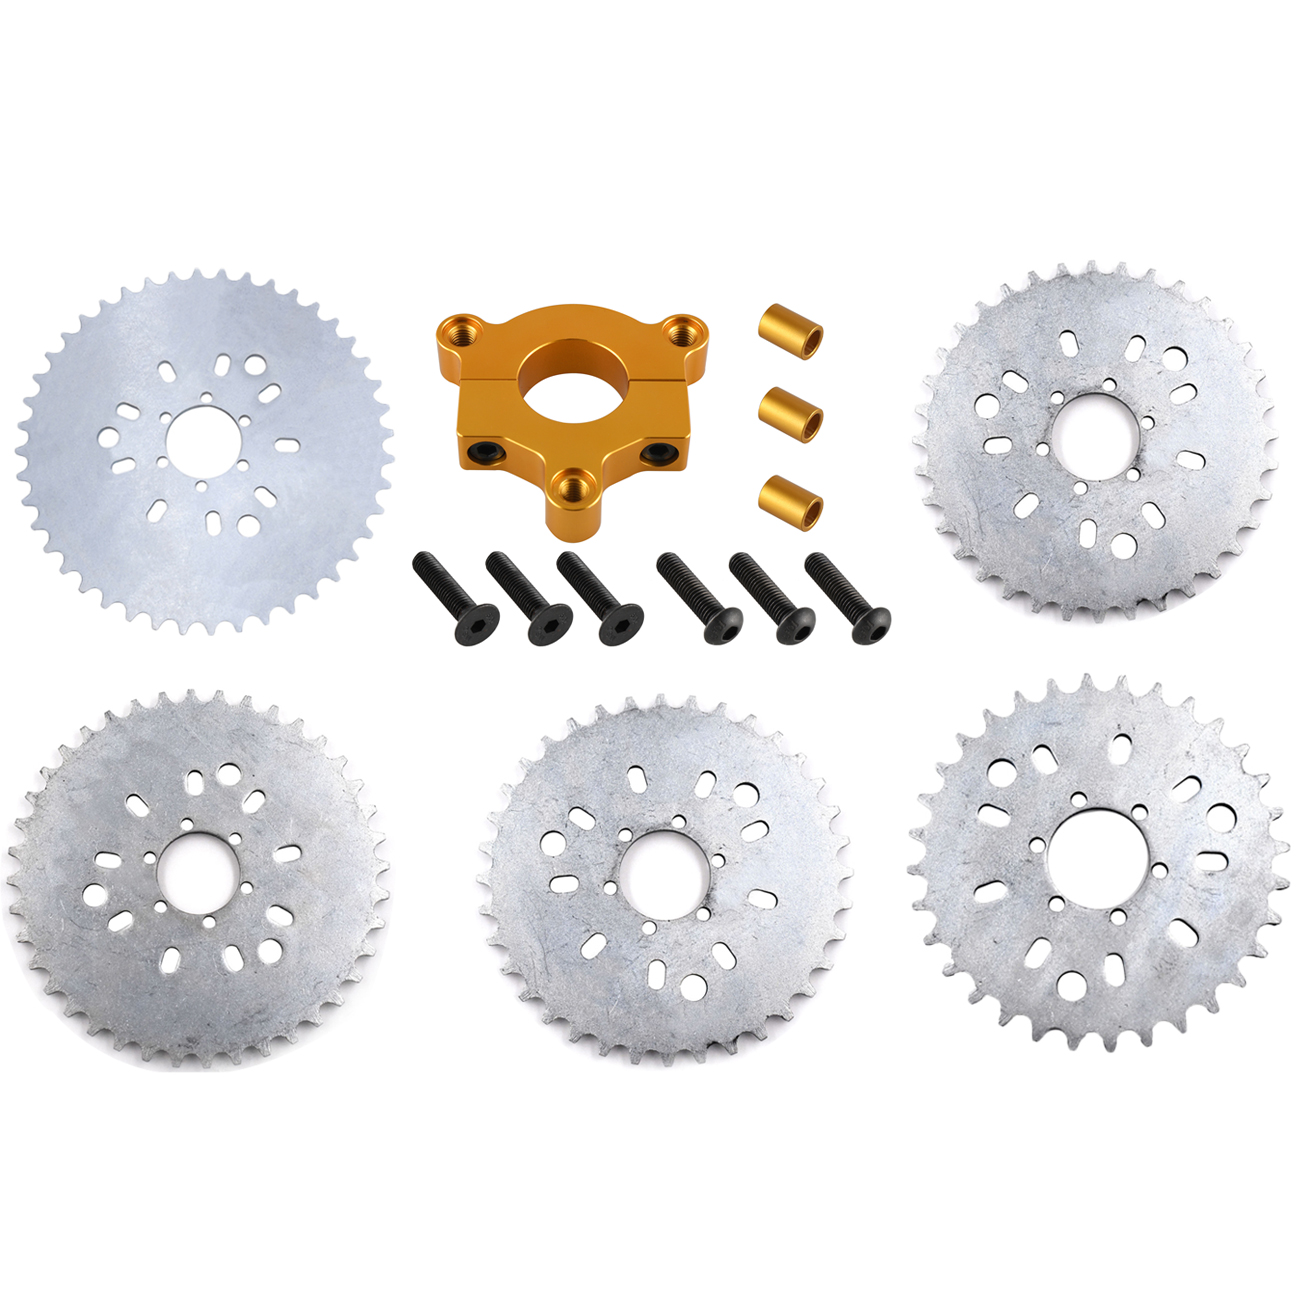 Pouvoir 32T 36T <font><b>38T</b></font> 40T 44T <font><b>Sprocket</b></font> Gold CNC Adaptor For 415 Chain Motorized Bike High Performance image